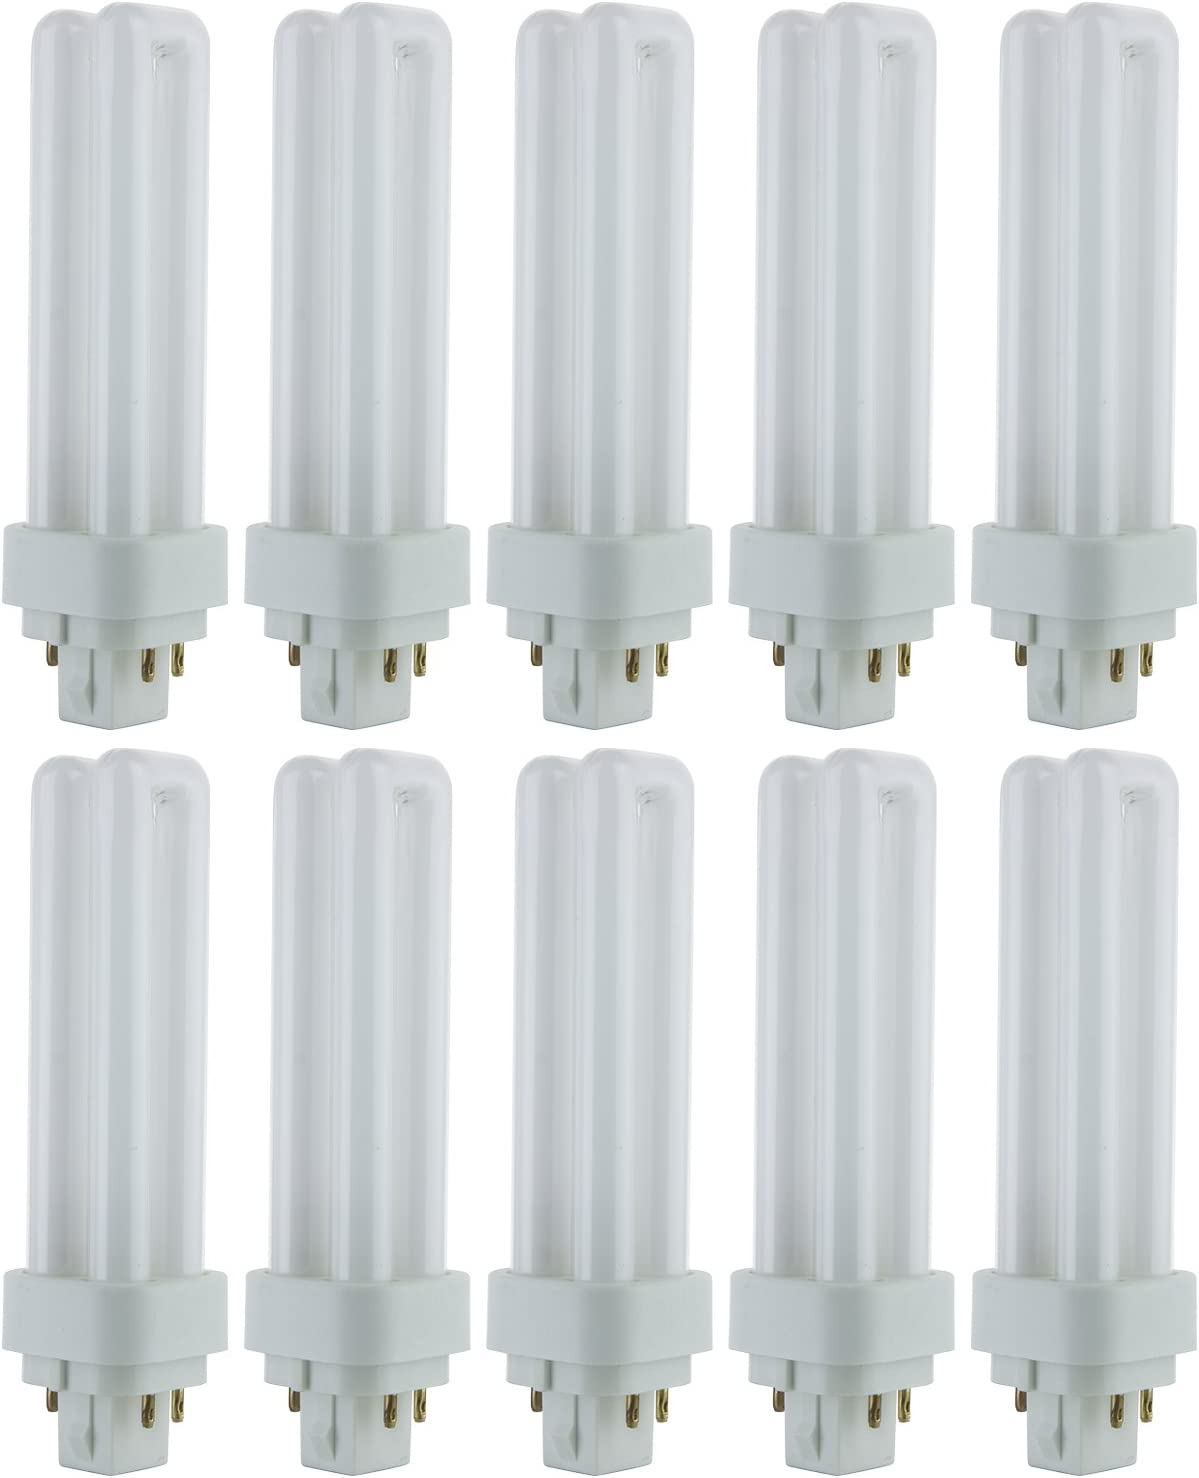 Sunlite PLD13/E/SP41K/10PK 4100K Cool White Fluorescent 13W PLD Double U-Shaped Twin Tube CFL Bulbs with 4-Pin G24Q-1 Base (10 Pack)